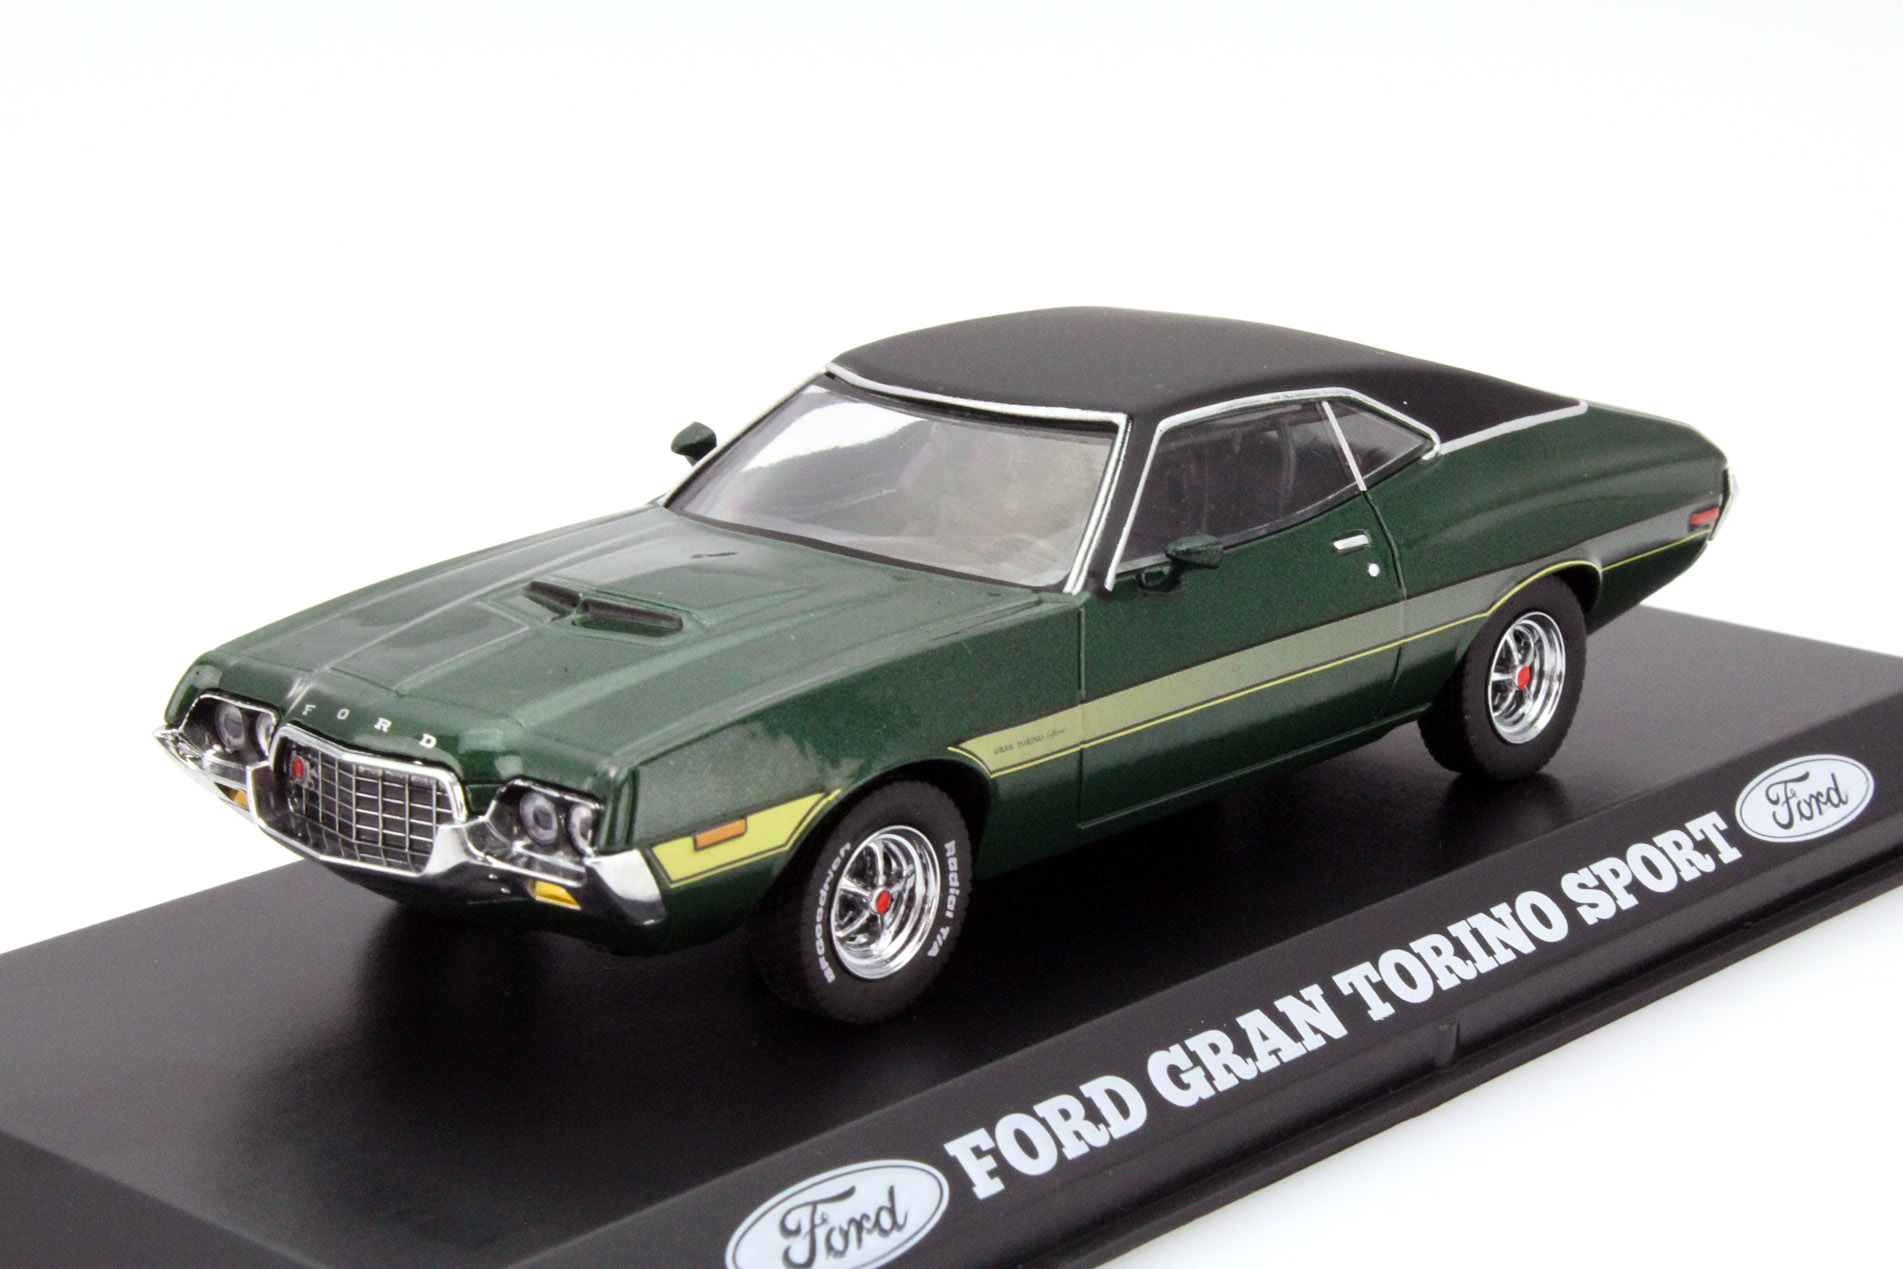 ford gran torino html with 1972 Ford Gran Torino Sport Green W Yellow Stripes on 31519 1968 Torino Gt 390 034s034 Code 4 Speed Fastback Extremely Nice Numbers Matching likewise Autos De La Saga Rapidos Y Furiosos further Autos De La Saga Rapidos Y Furiosos also 1966 Gto Pontiac Fuse Box in addition Info 1972 1979 Body Insulator Bushings topic2935.